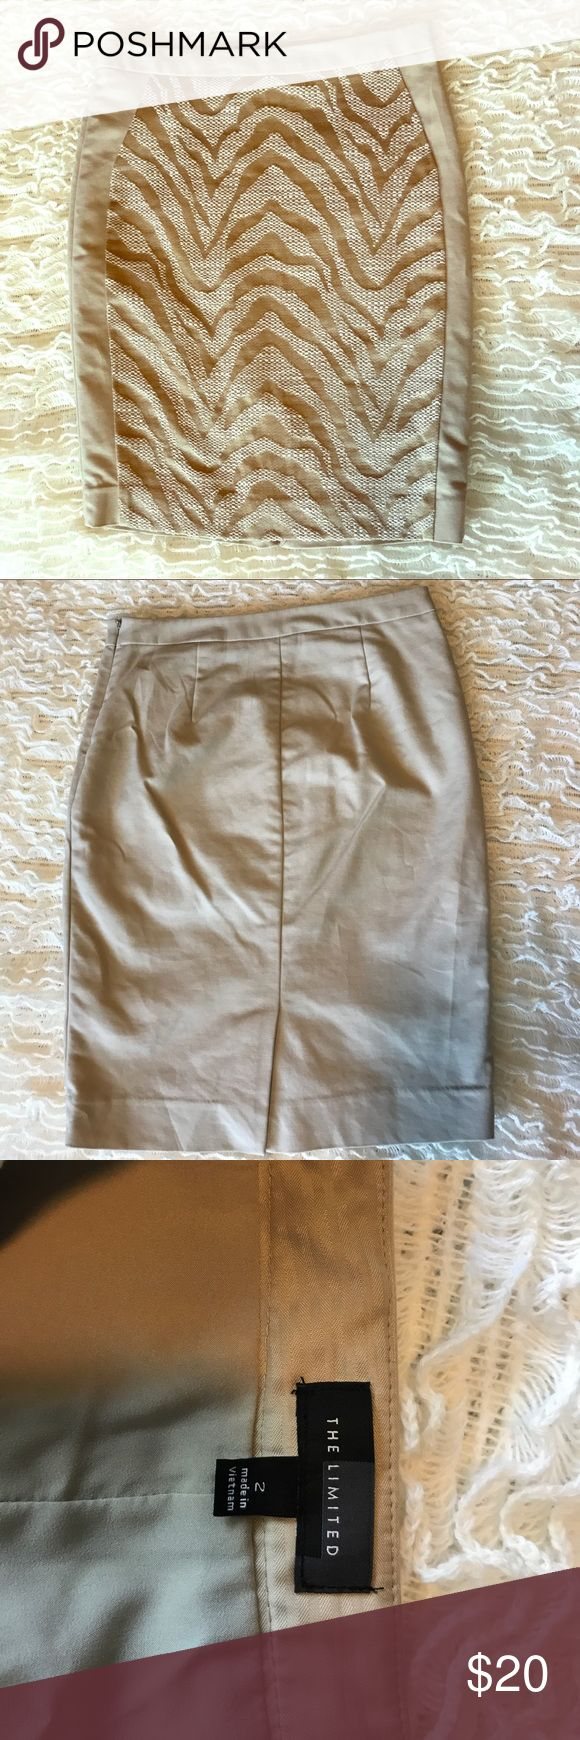 The Limited Khaki Pencil Skirt with Zebra Inset The Limited Khaki Pencil Skirt with Zebra Inset. In good used condition but shows some signs of wear. Size 2. The Limited Skirts Pencil